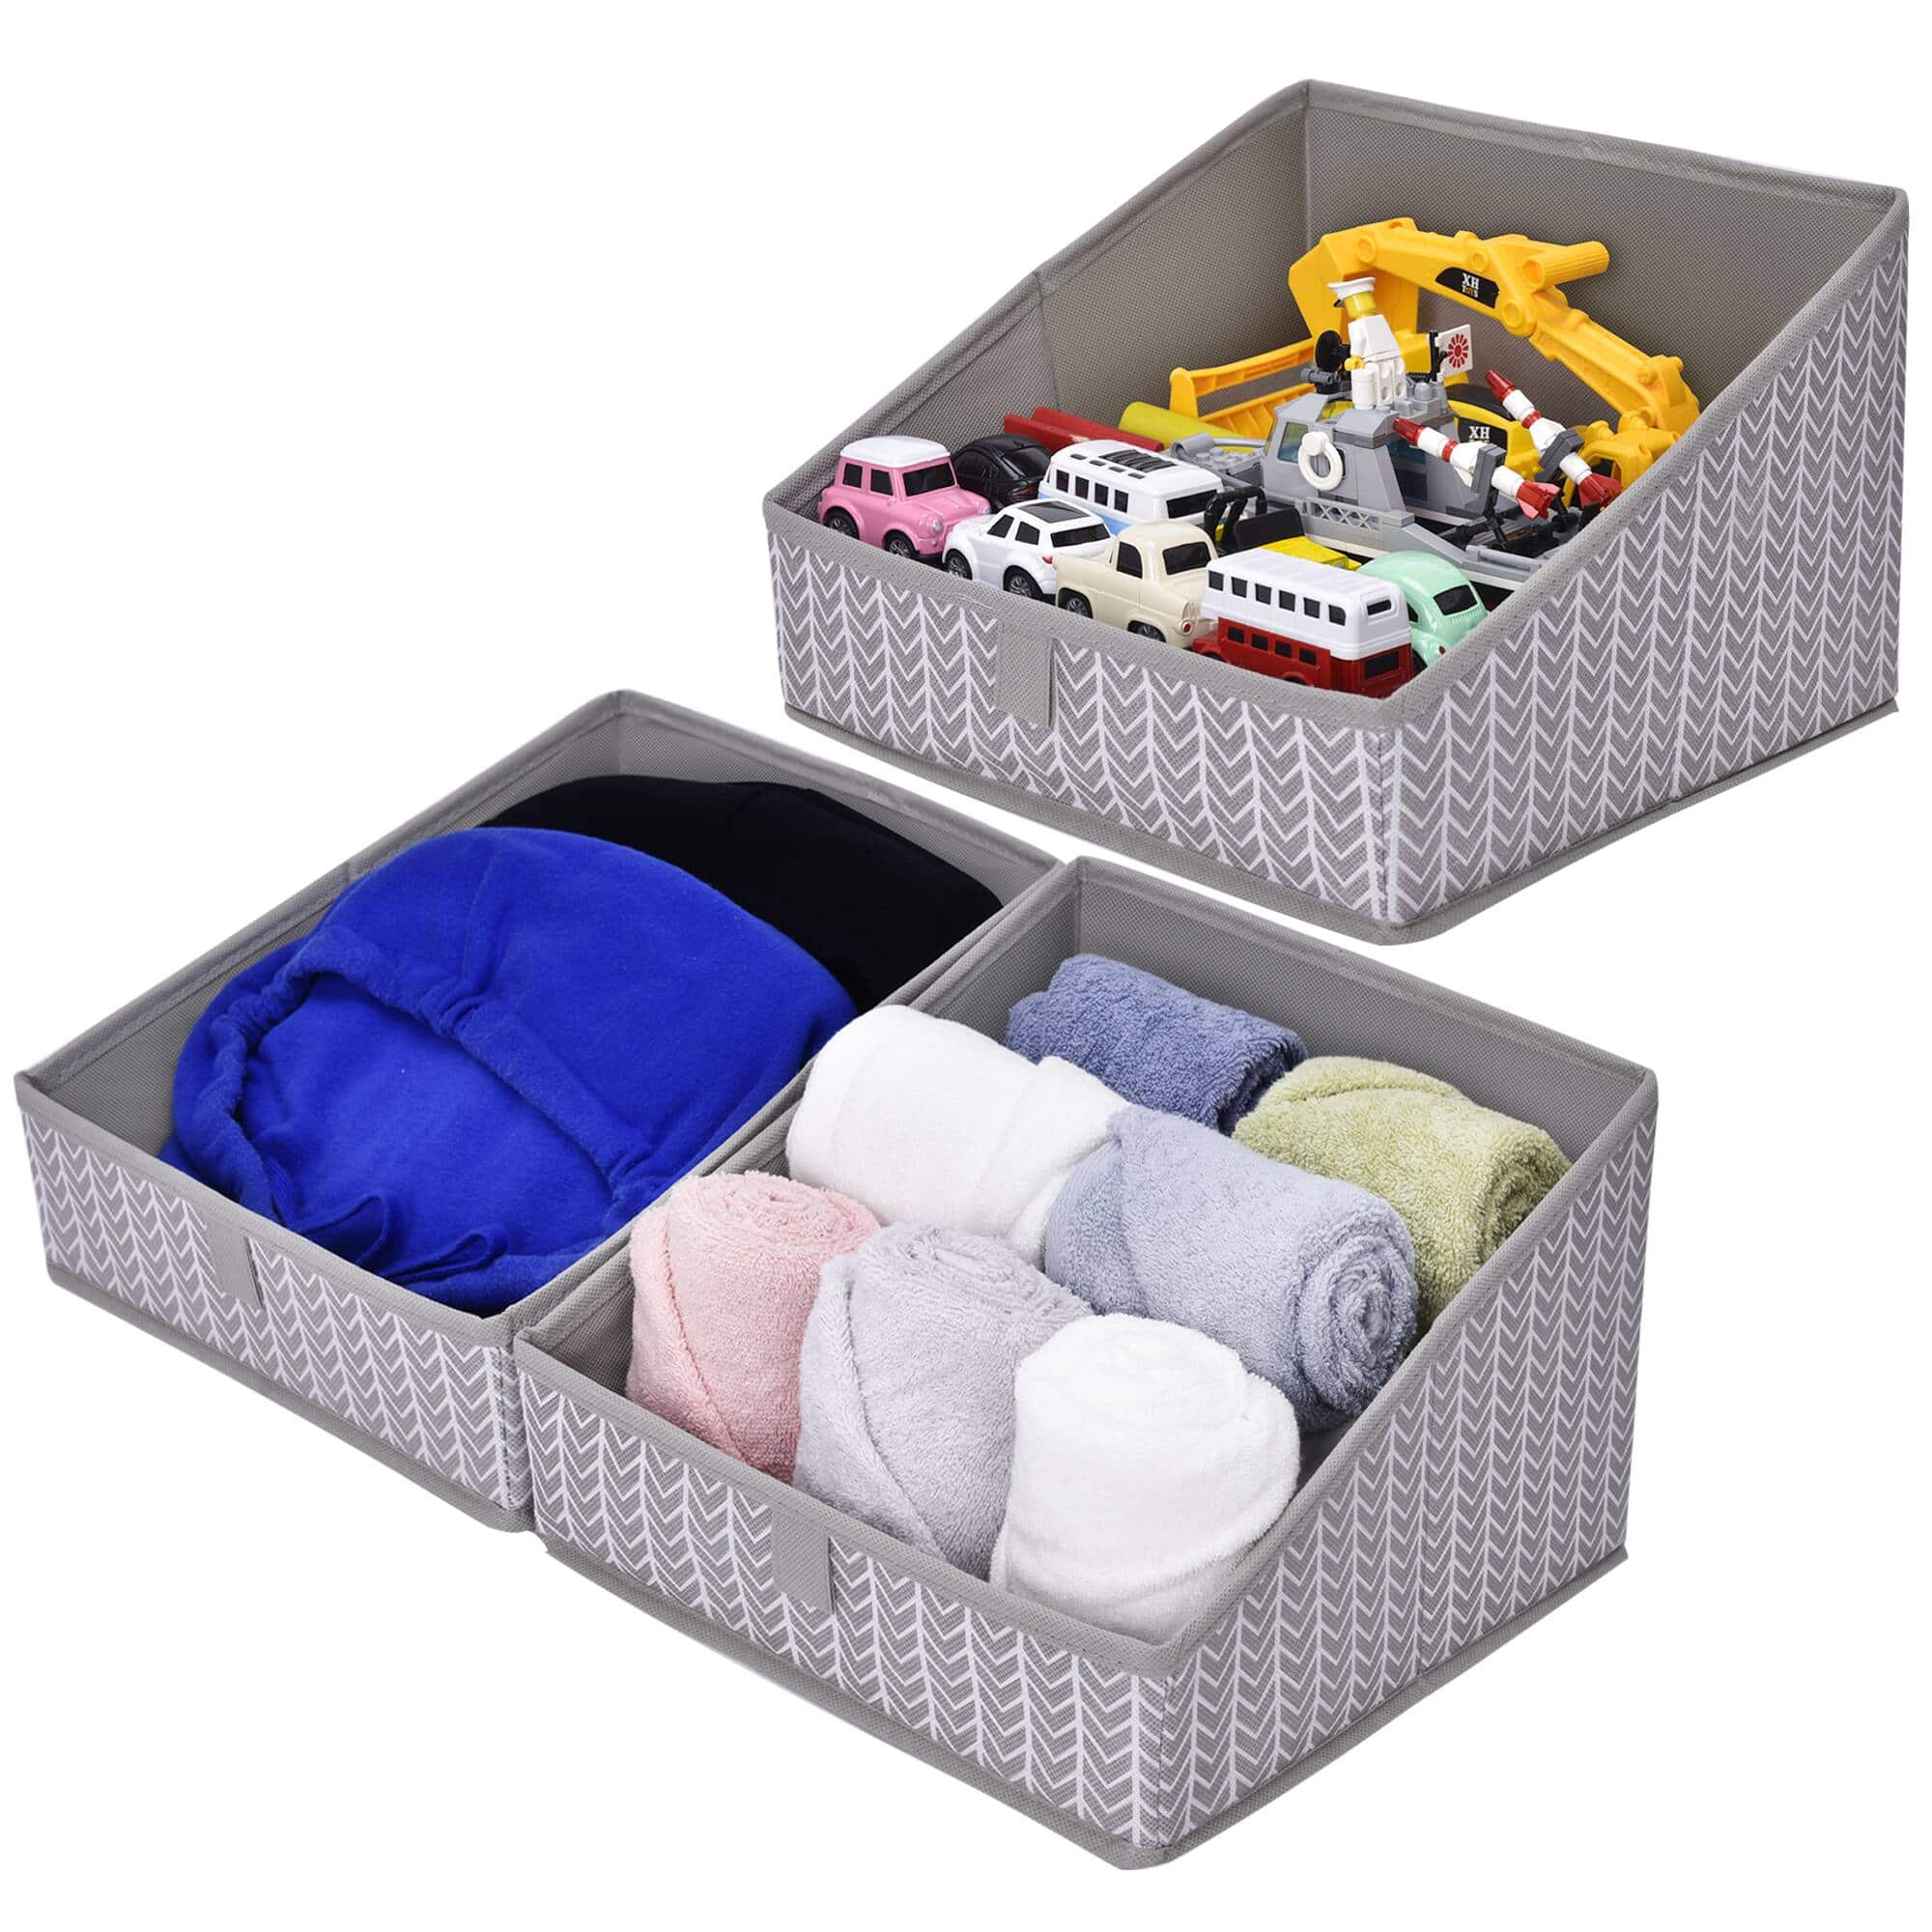 Trapezoid Storage Bins,3-Pack,$9.89 + Free Shipping w/ Amazon Prime or Orders $25+